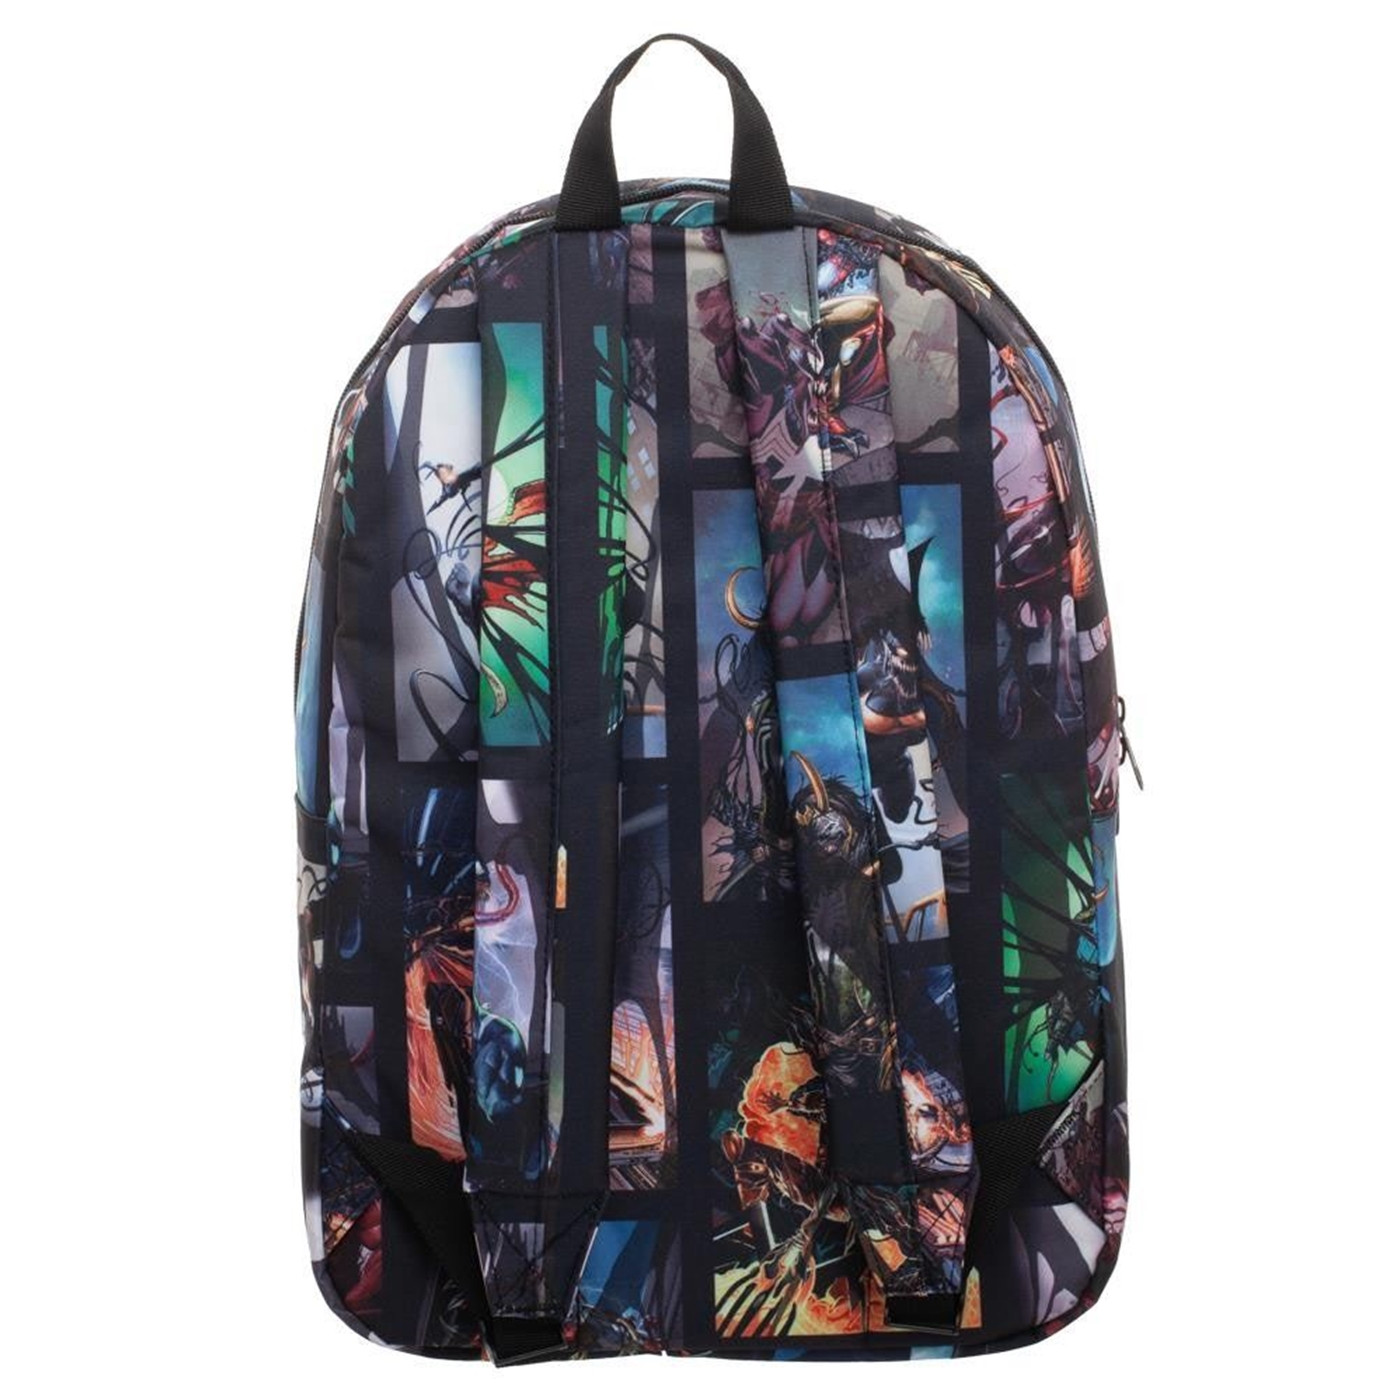 Venom All Over Print Backpack